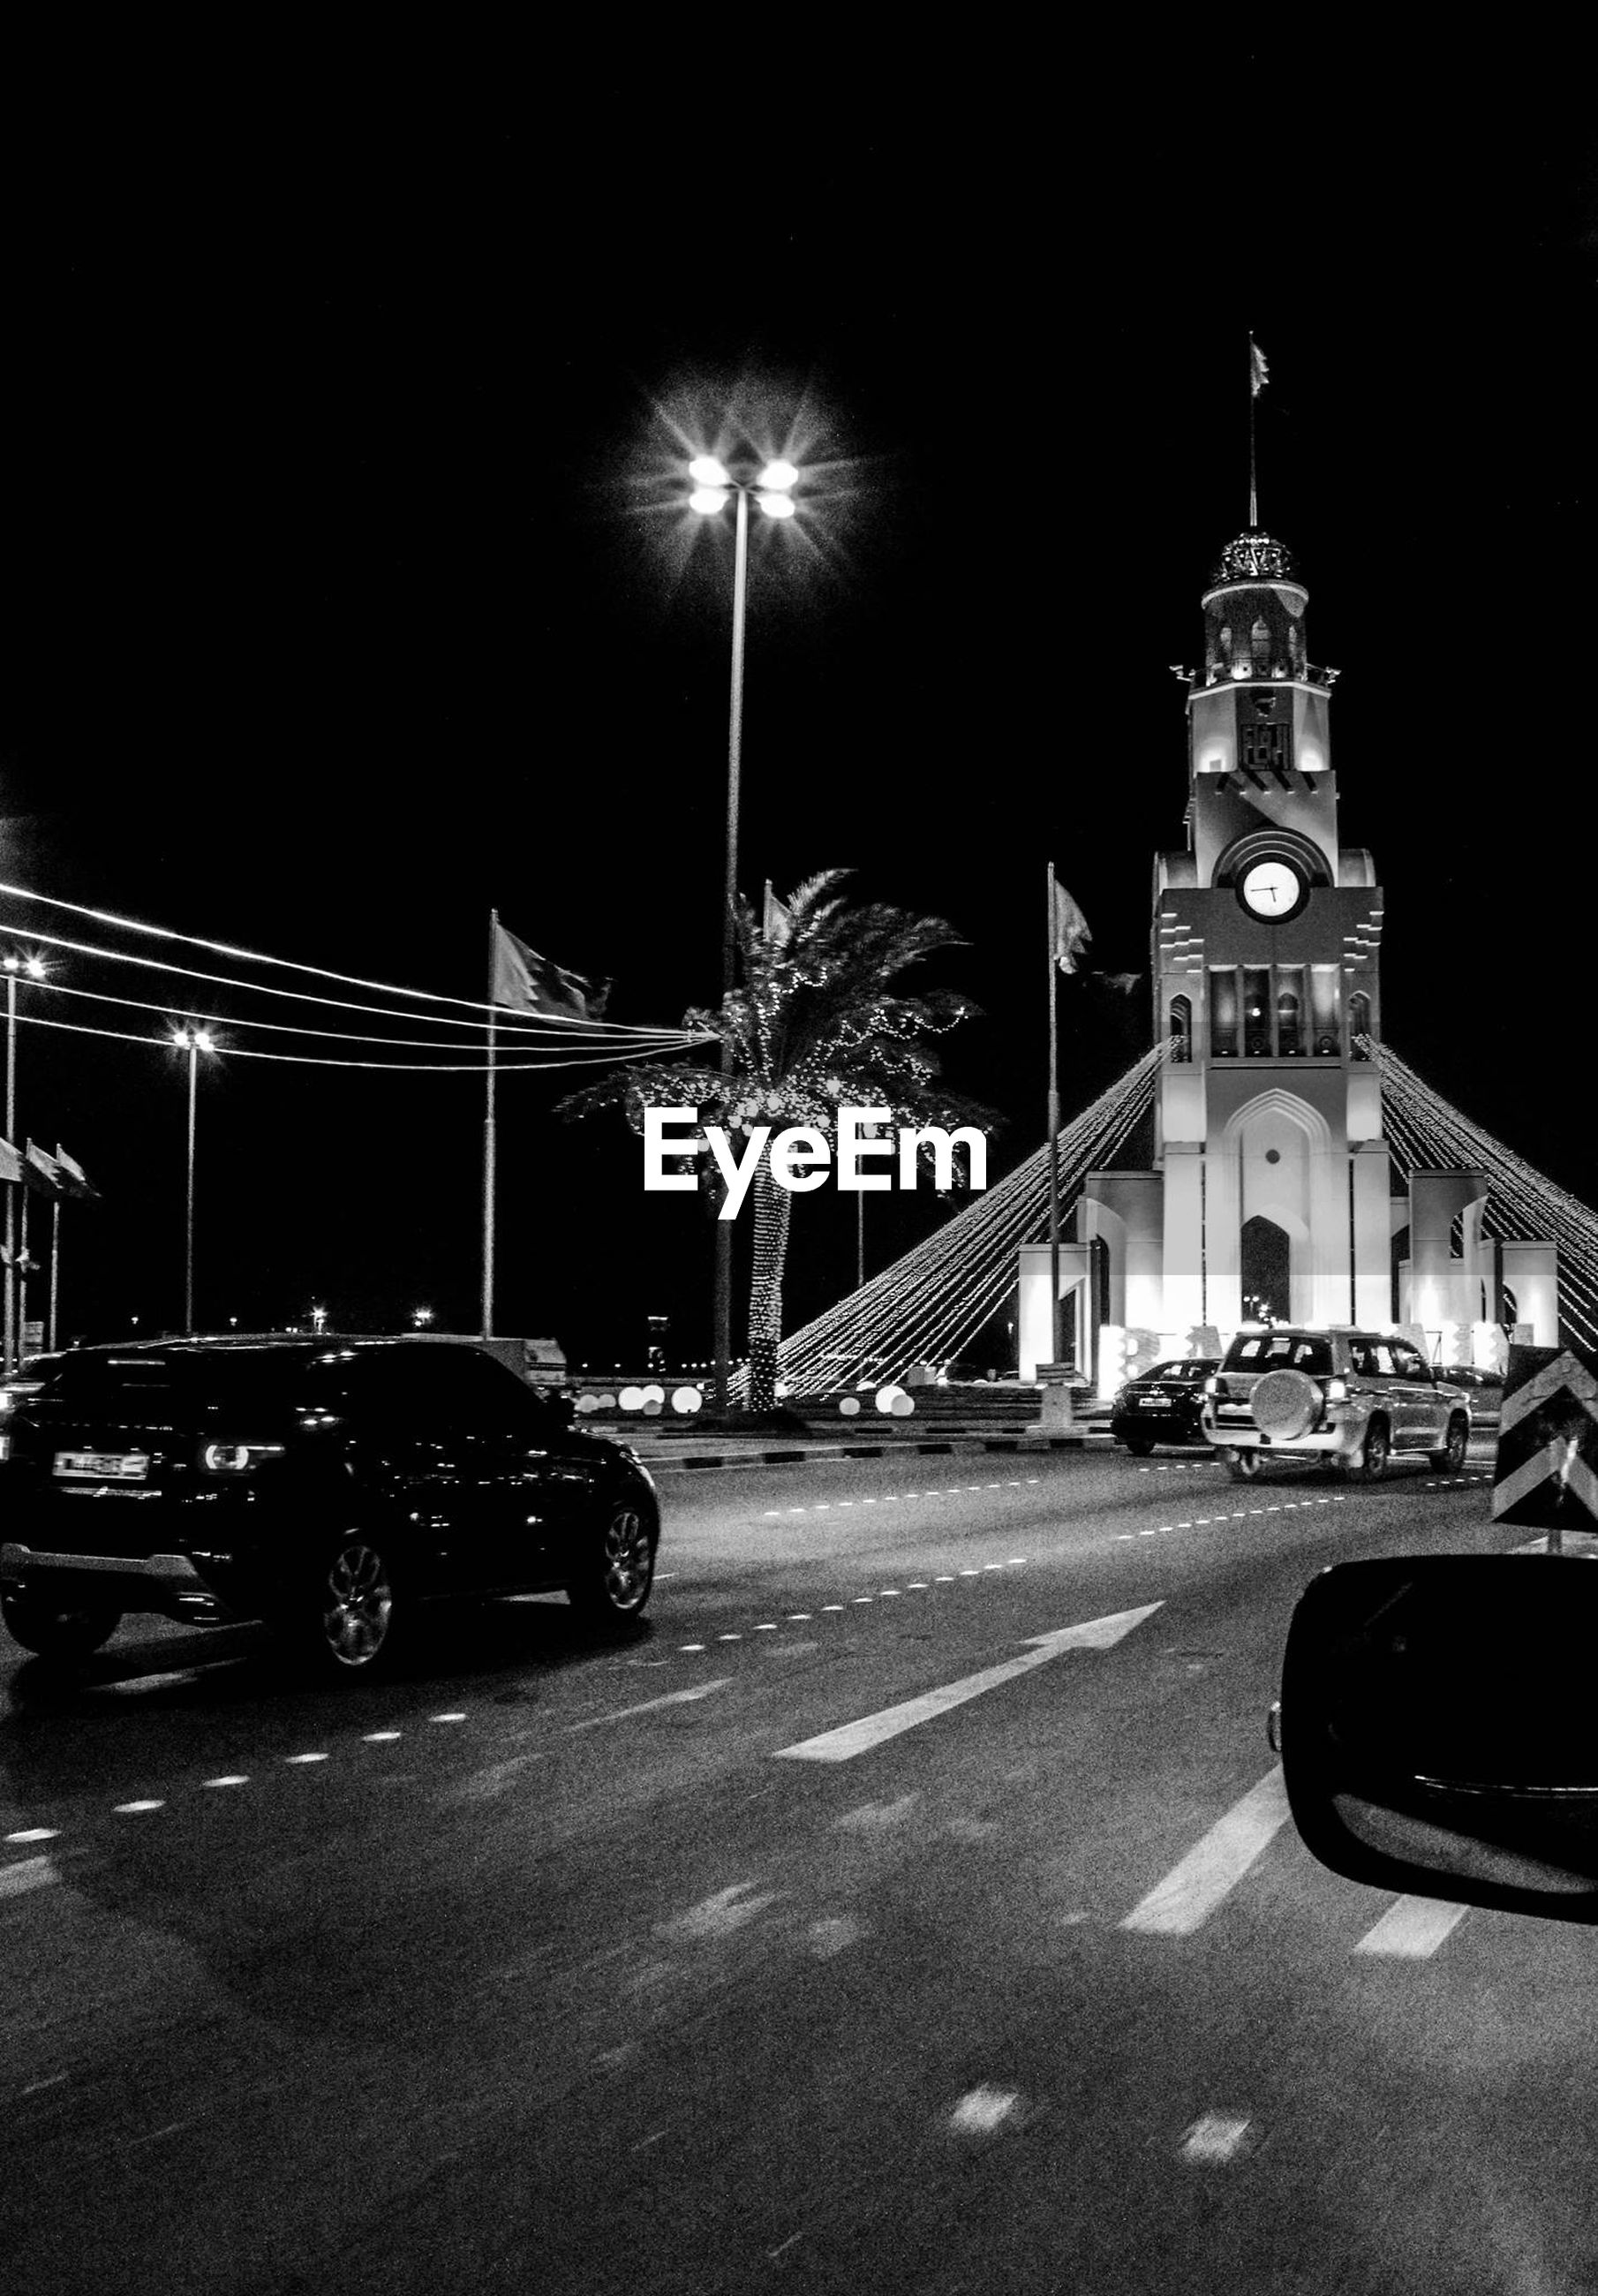 car, land vehicle, transportation, night, illuminated, architecture, building exterior, built structure, street, mode of transport, road, street light, city, city street, traffic, travel, sky, clear sky, city life, clock tower